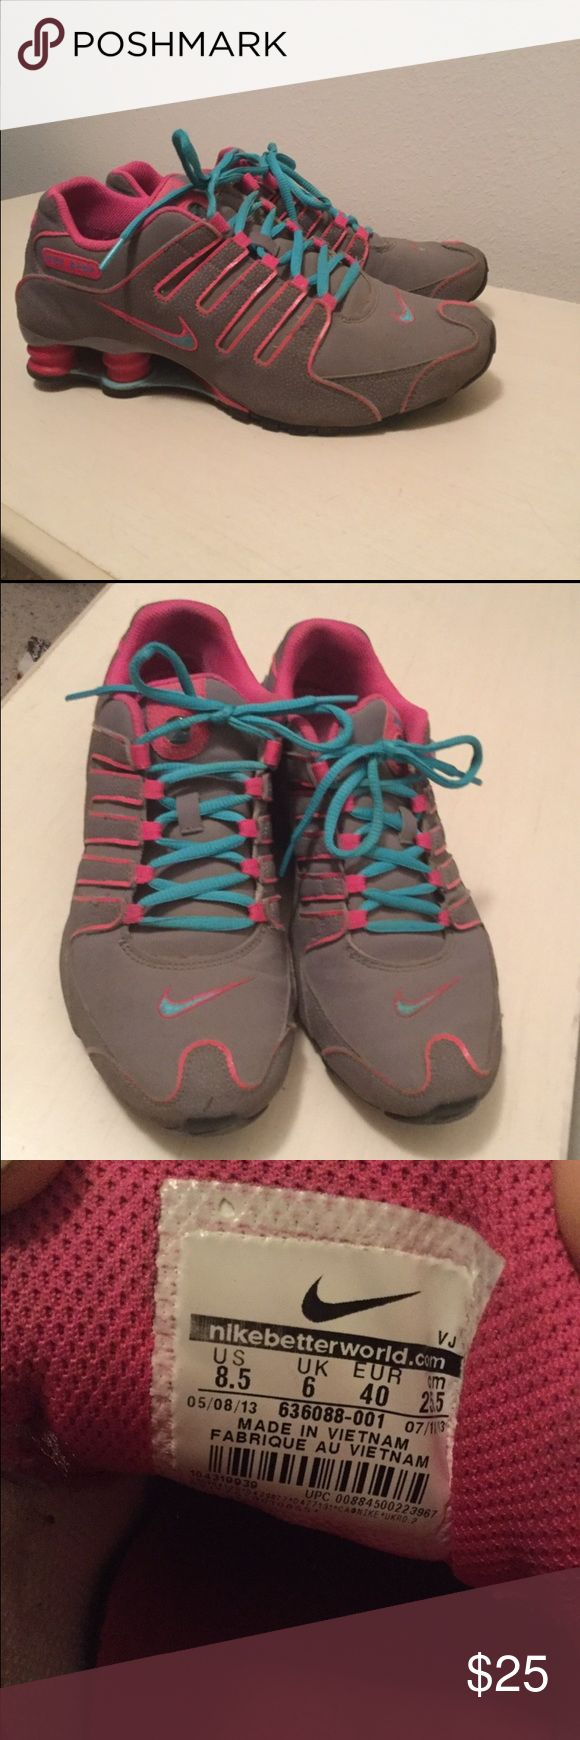 Size 8.5 Nike Shocks Grey, pink, and blue Nike shoes. GREAT condition. Nike Shoes Athletic Shoes